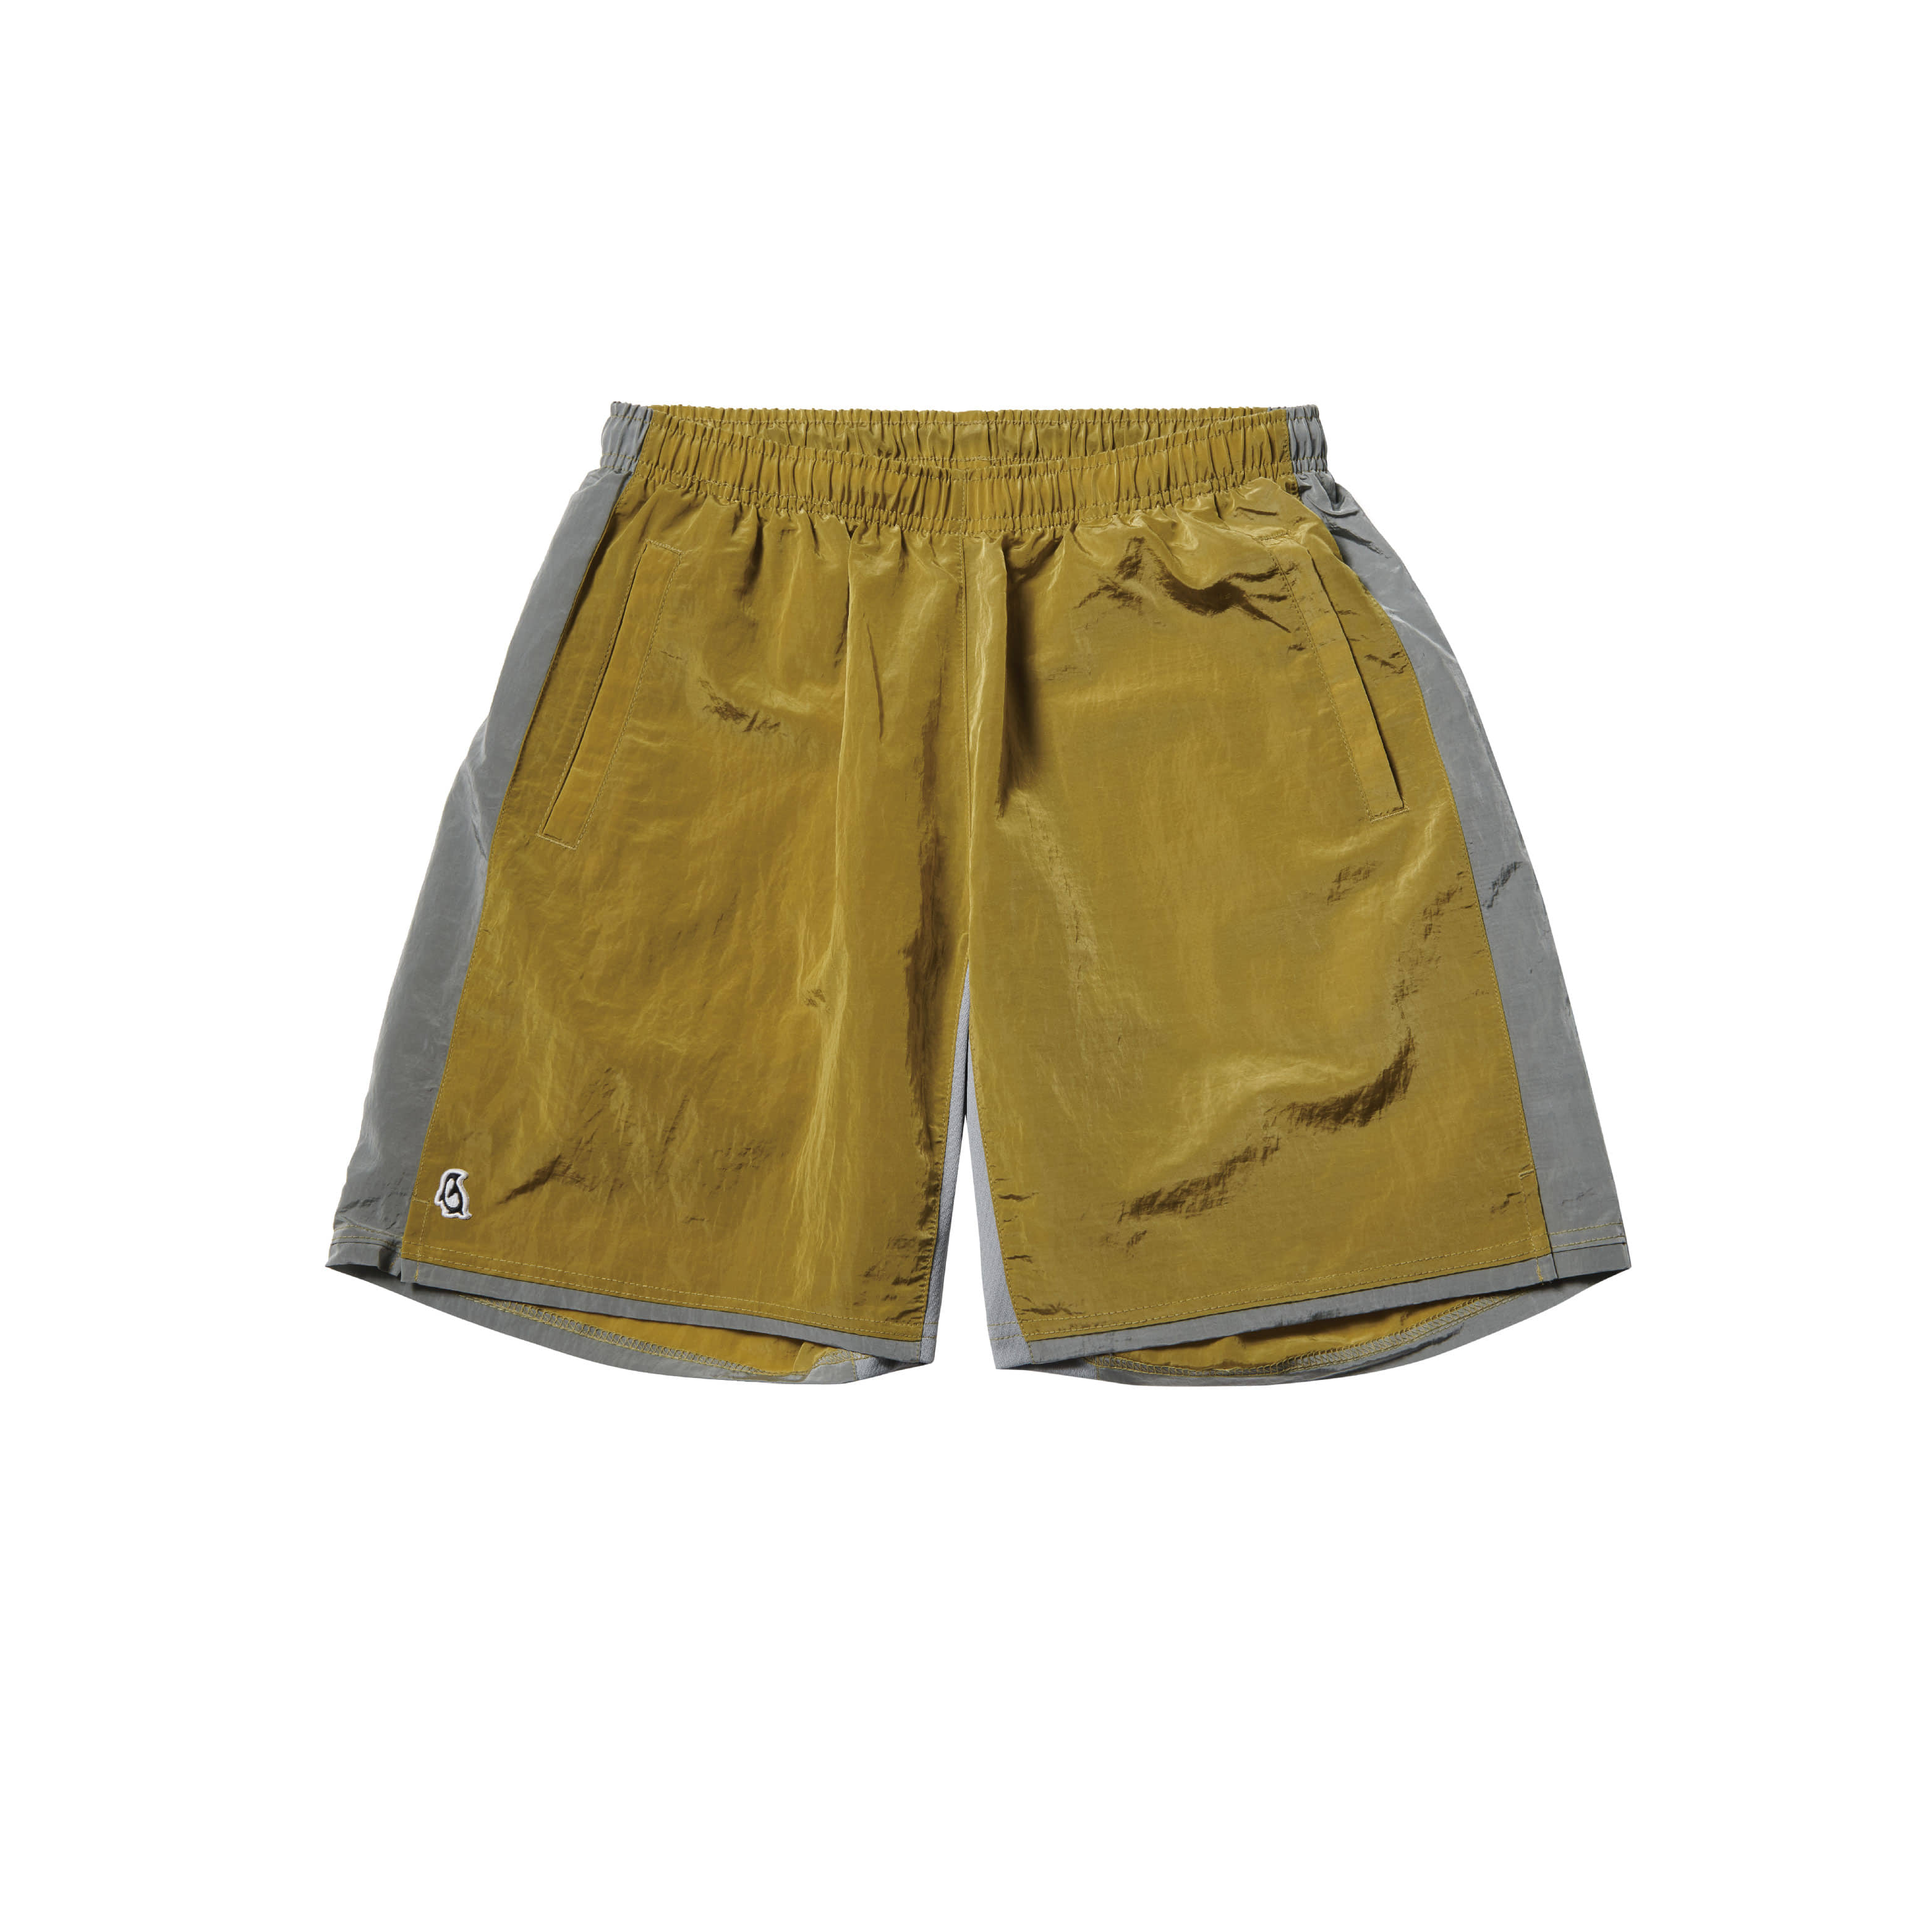 Paul Garments Dying Nylon Shorts Yellow Olive